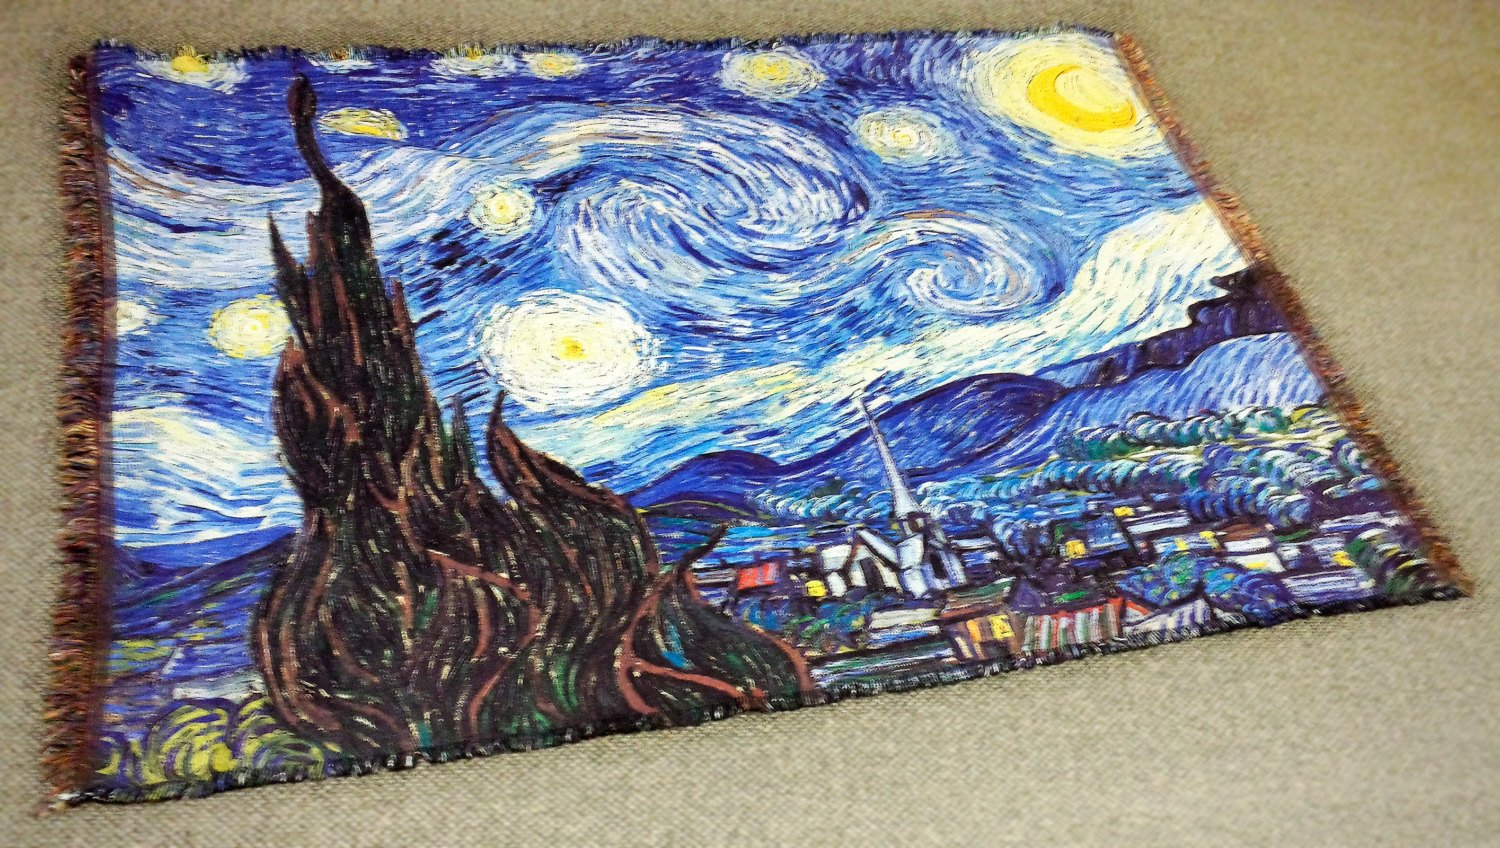 Vincent Van Gogh - Starry Night - Throw Blanket / Tapestry Wall Hanging (HD Woven, 70x54)